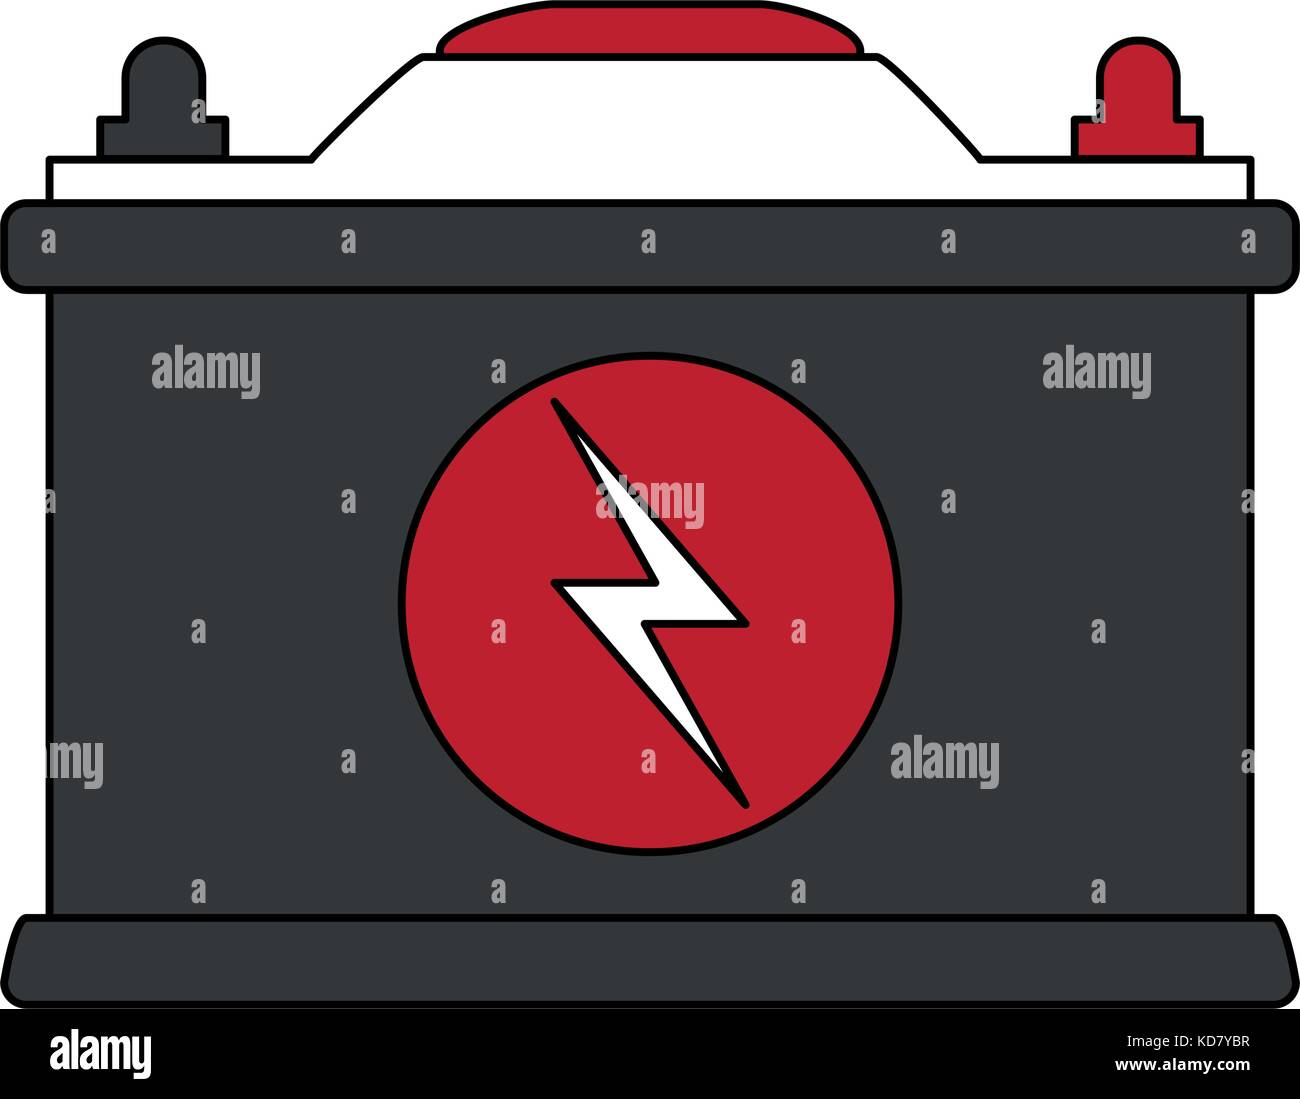 Car Battery Icon Image Vector Illustration Graphic Design Stock